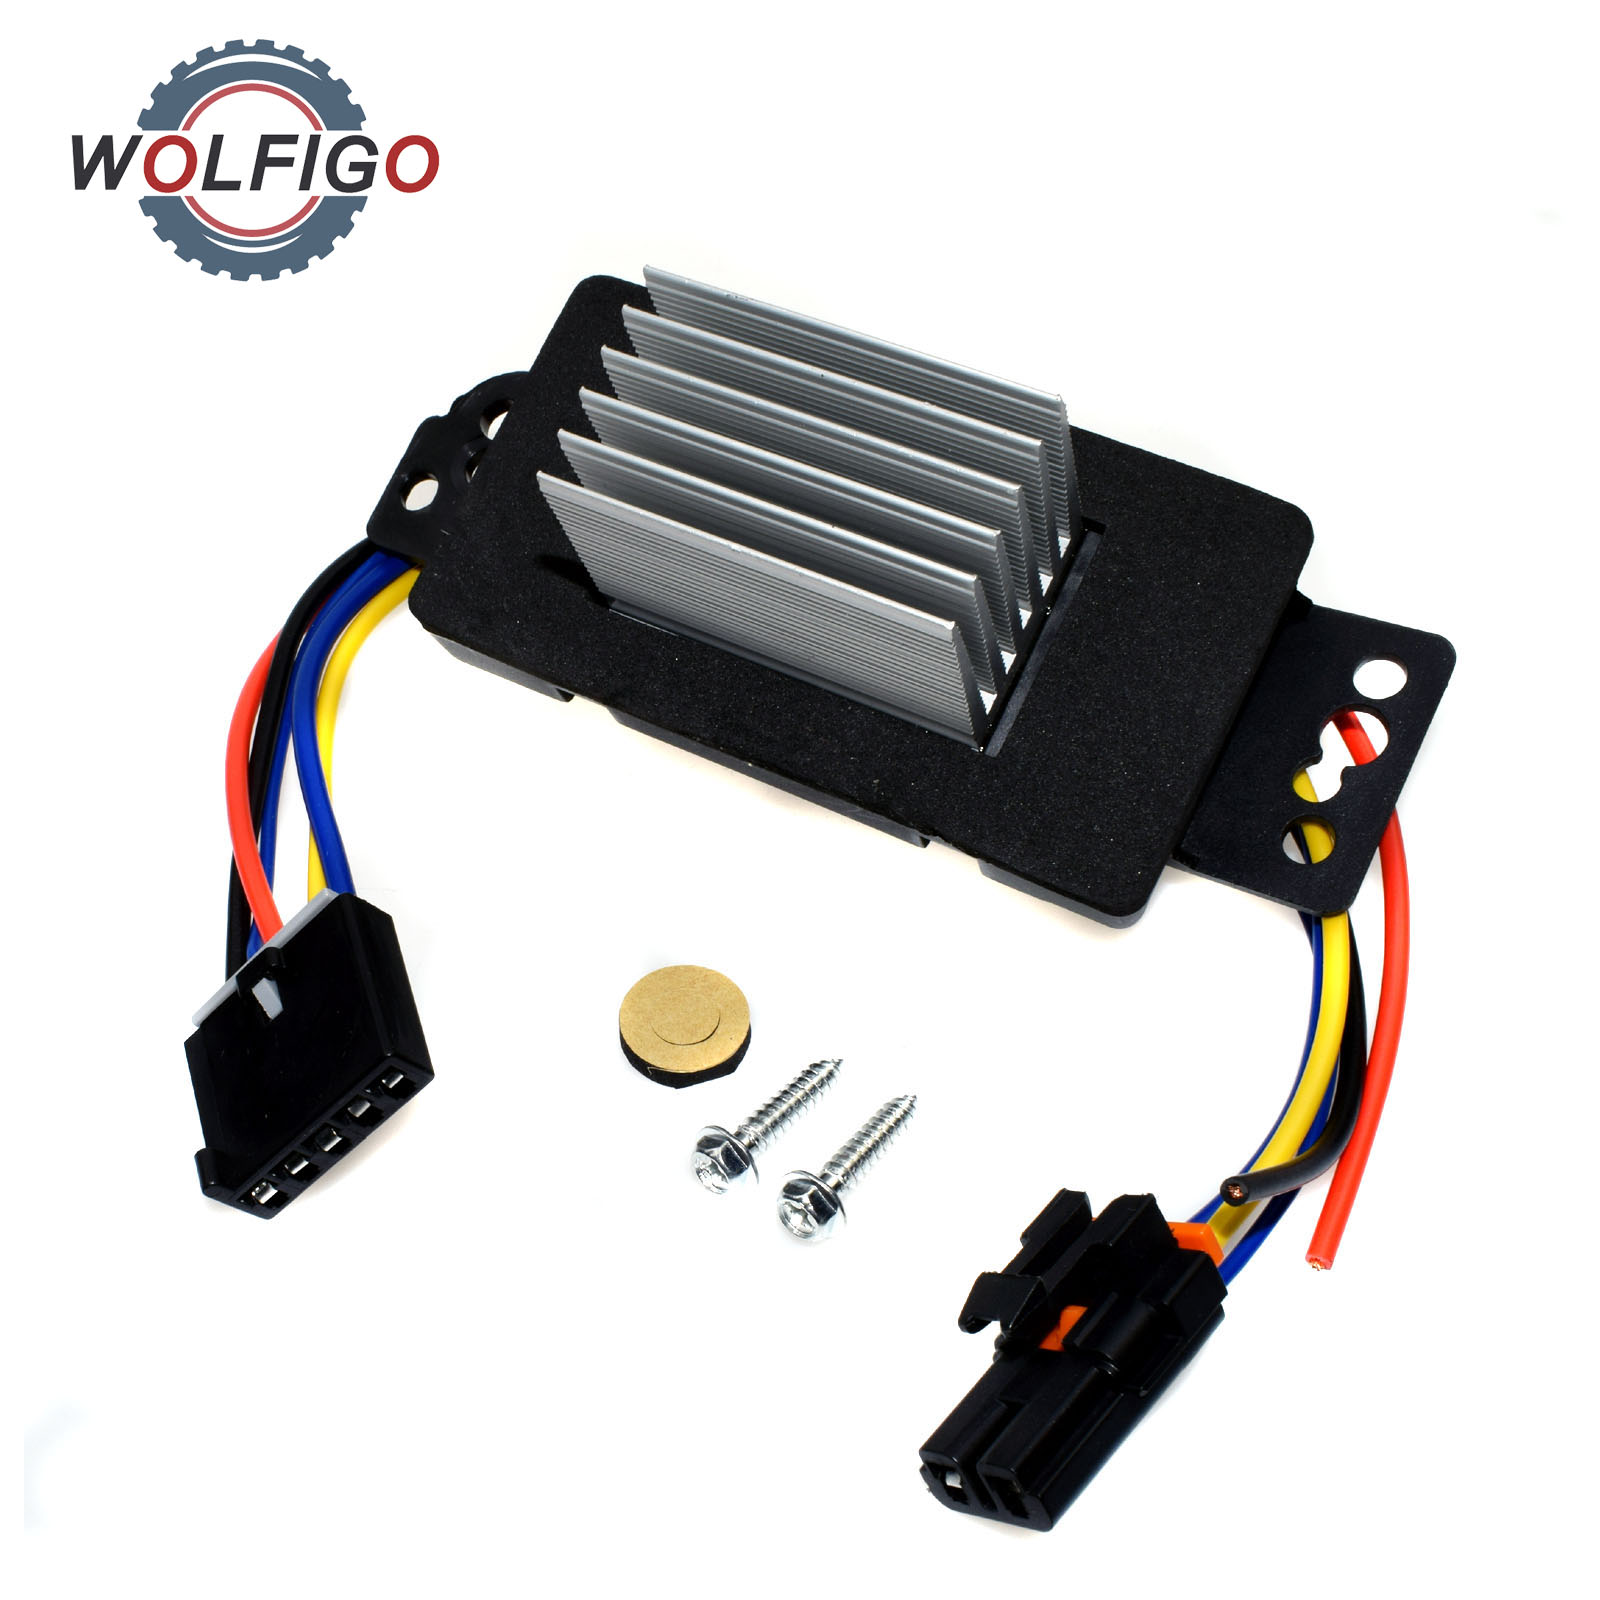 WOLFIGO New HVAC Blower Motor Resistor with Plug Harness 15850268 22754990  RU359 1580888 for Pontiac Chevrolet Impala Buick-in Blower Motors from ...